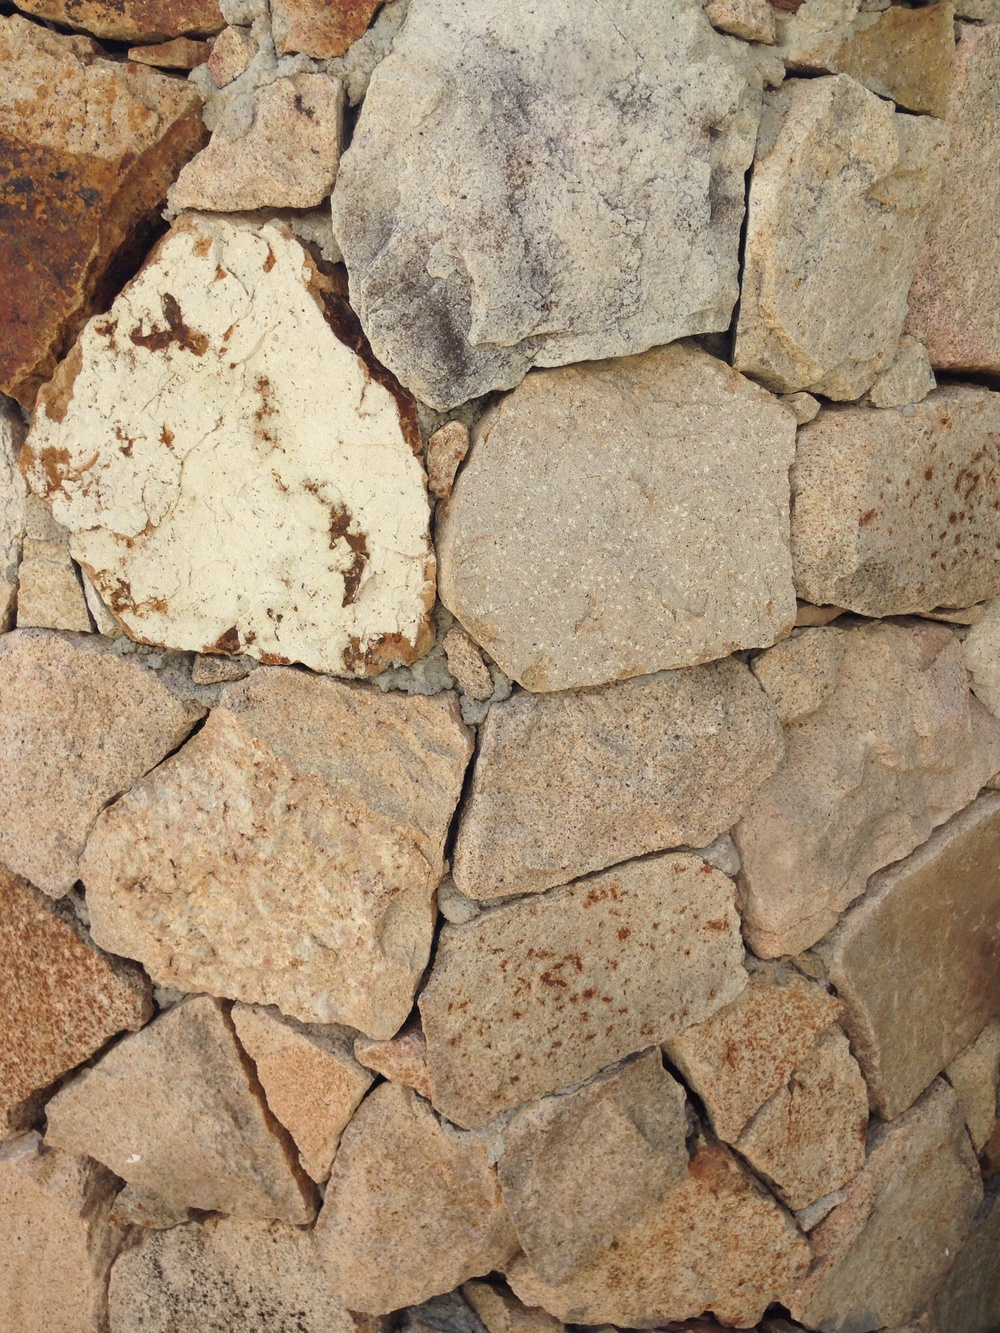 Hand-laid rock wall adds texture and a natural element.